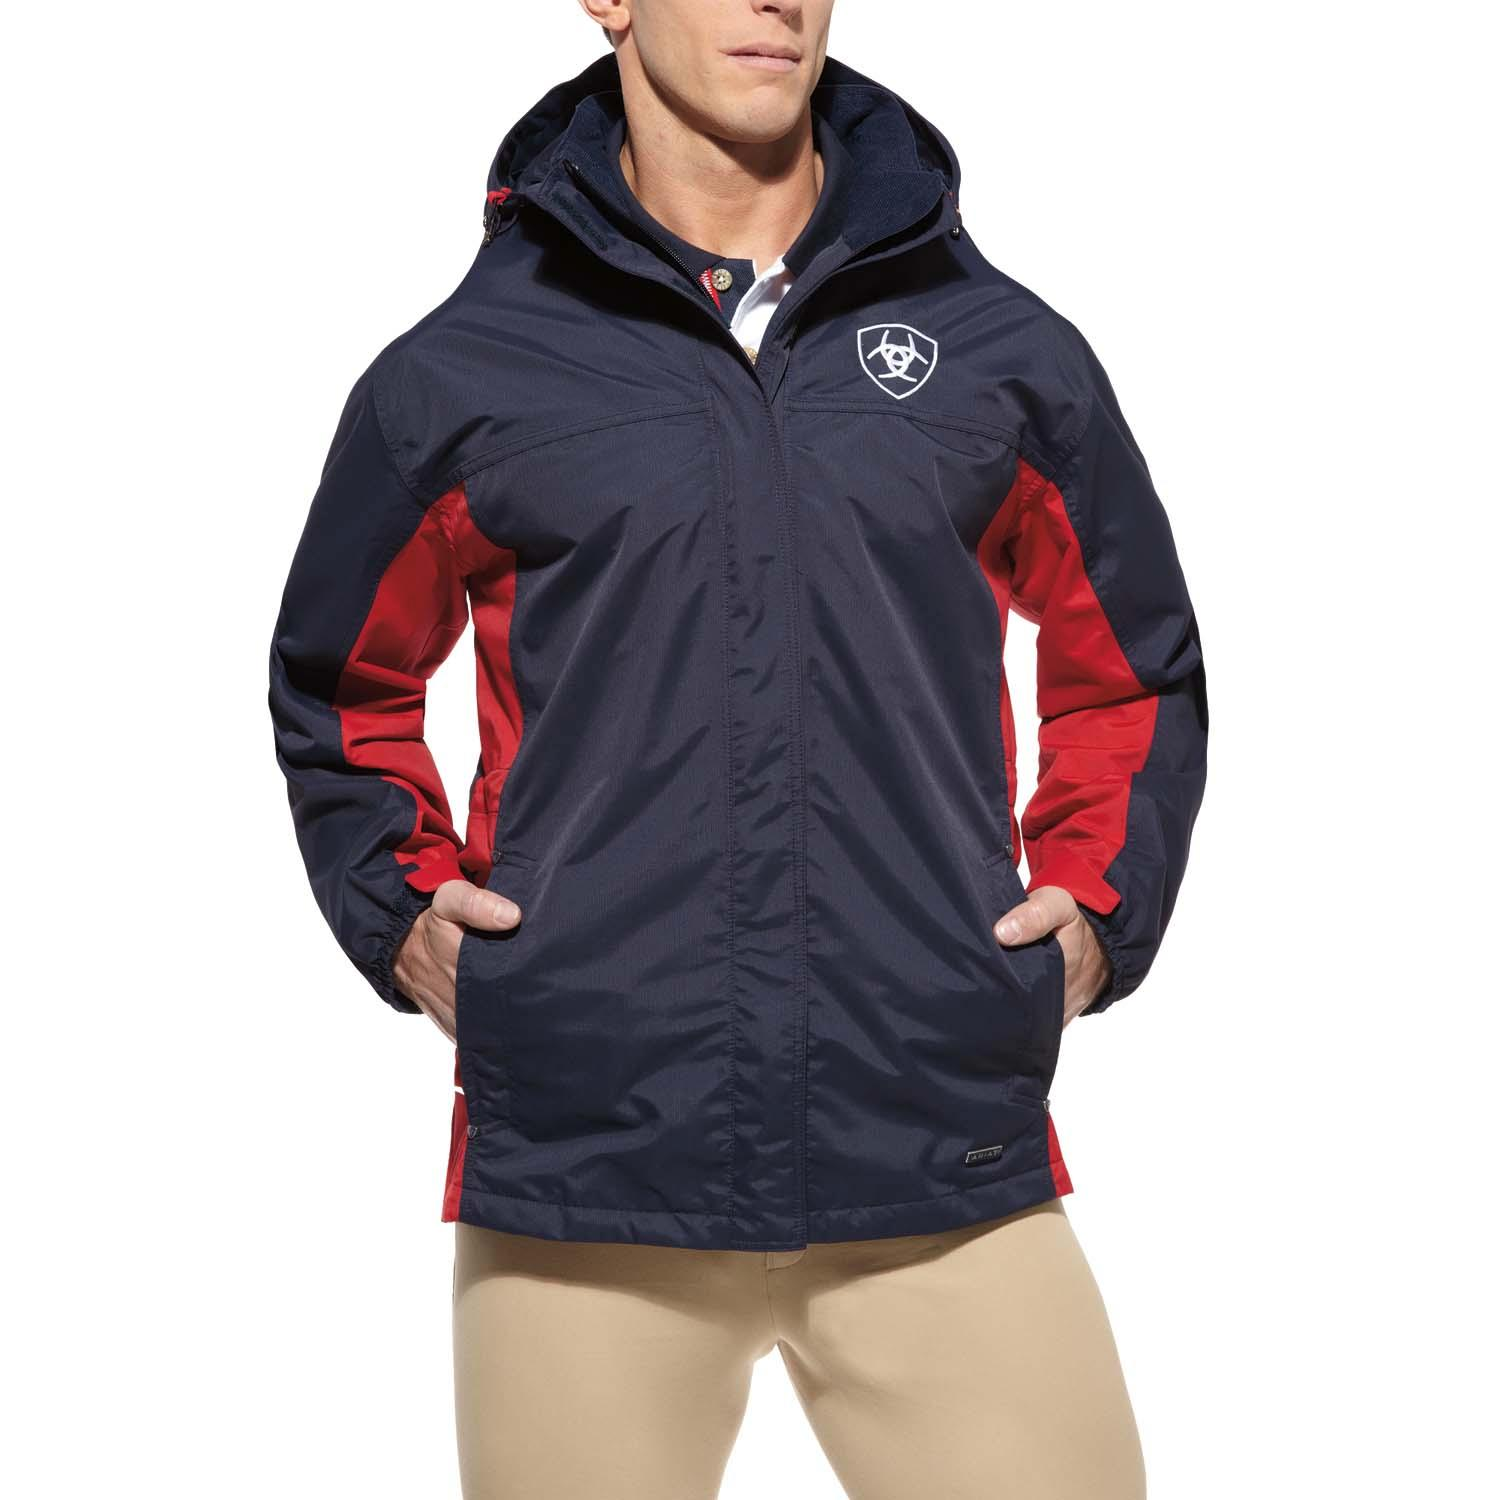 Ariat Men's Team Waterproof Jacket